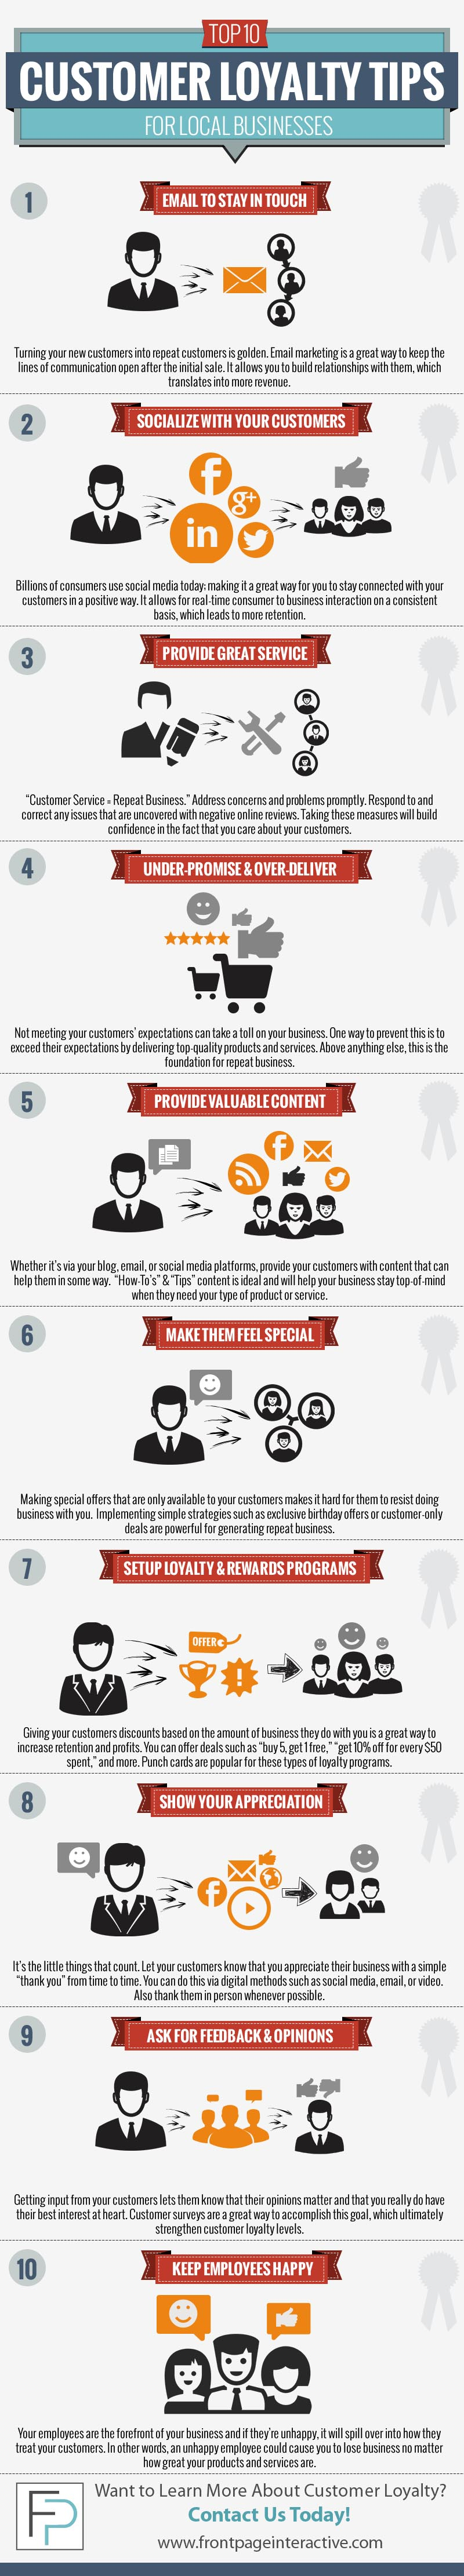 Top 10 Customer Loyalty Tips